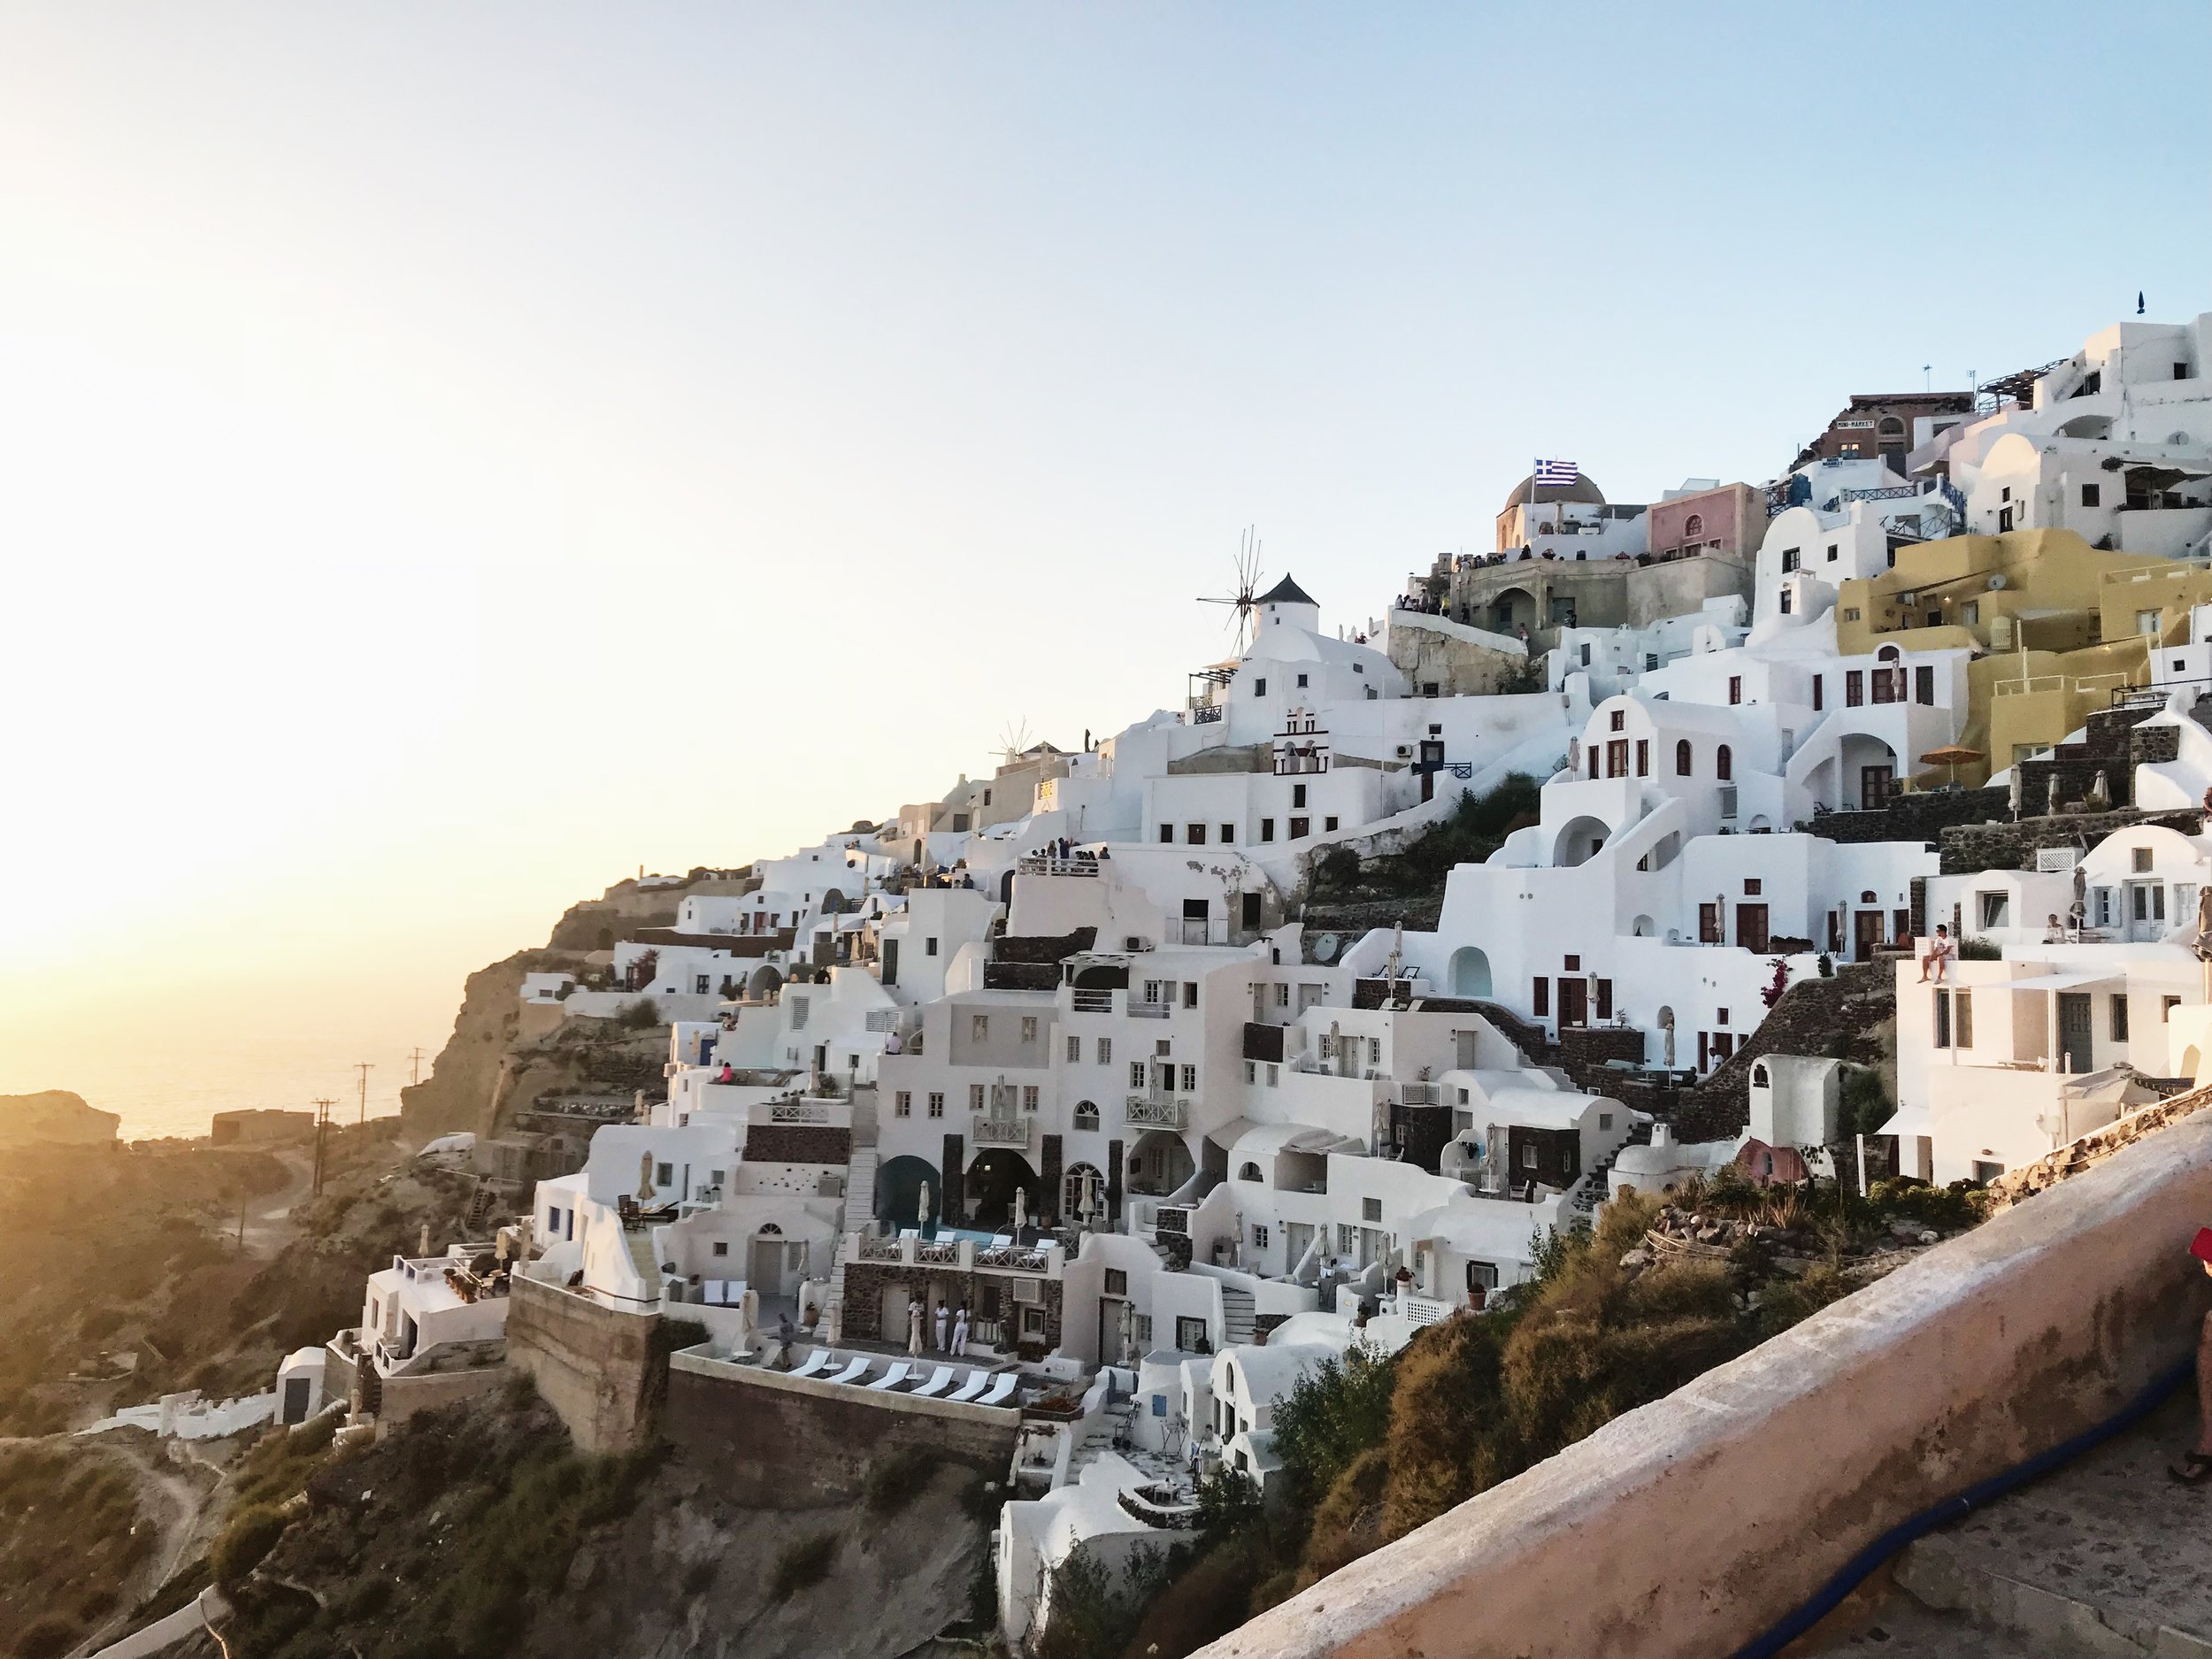 How to spend 3 days in santorini - Can't believe I went to Santorini for my honeymoon. It is truly a beautiful gem in the Aegean Sea and a one-of-a-kind experience. Beautiful sunsets, fresh food, amazing wine and great hospitality.